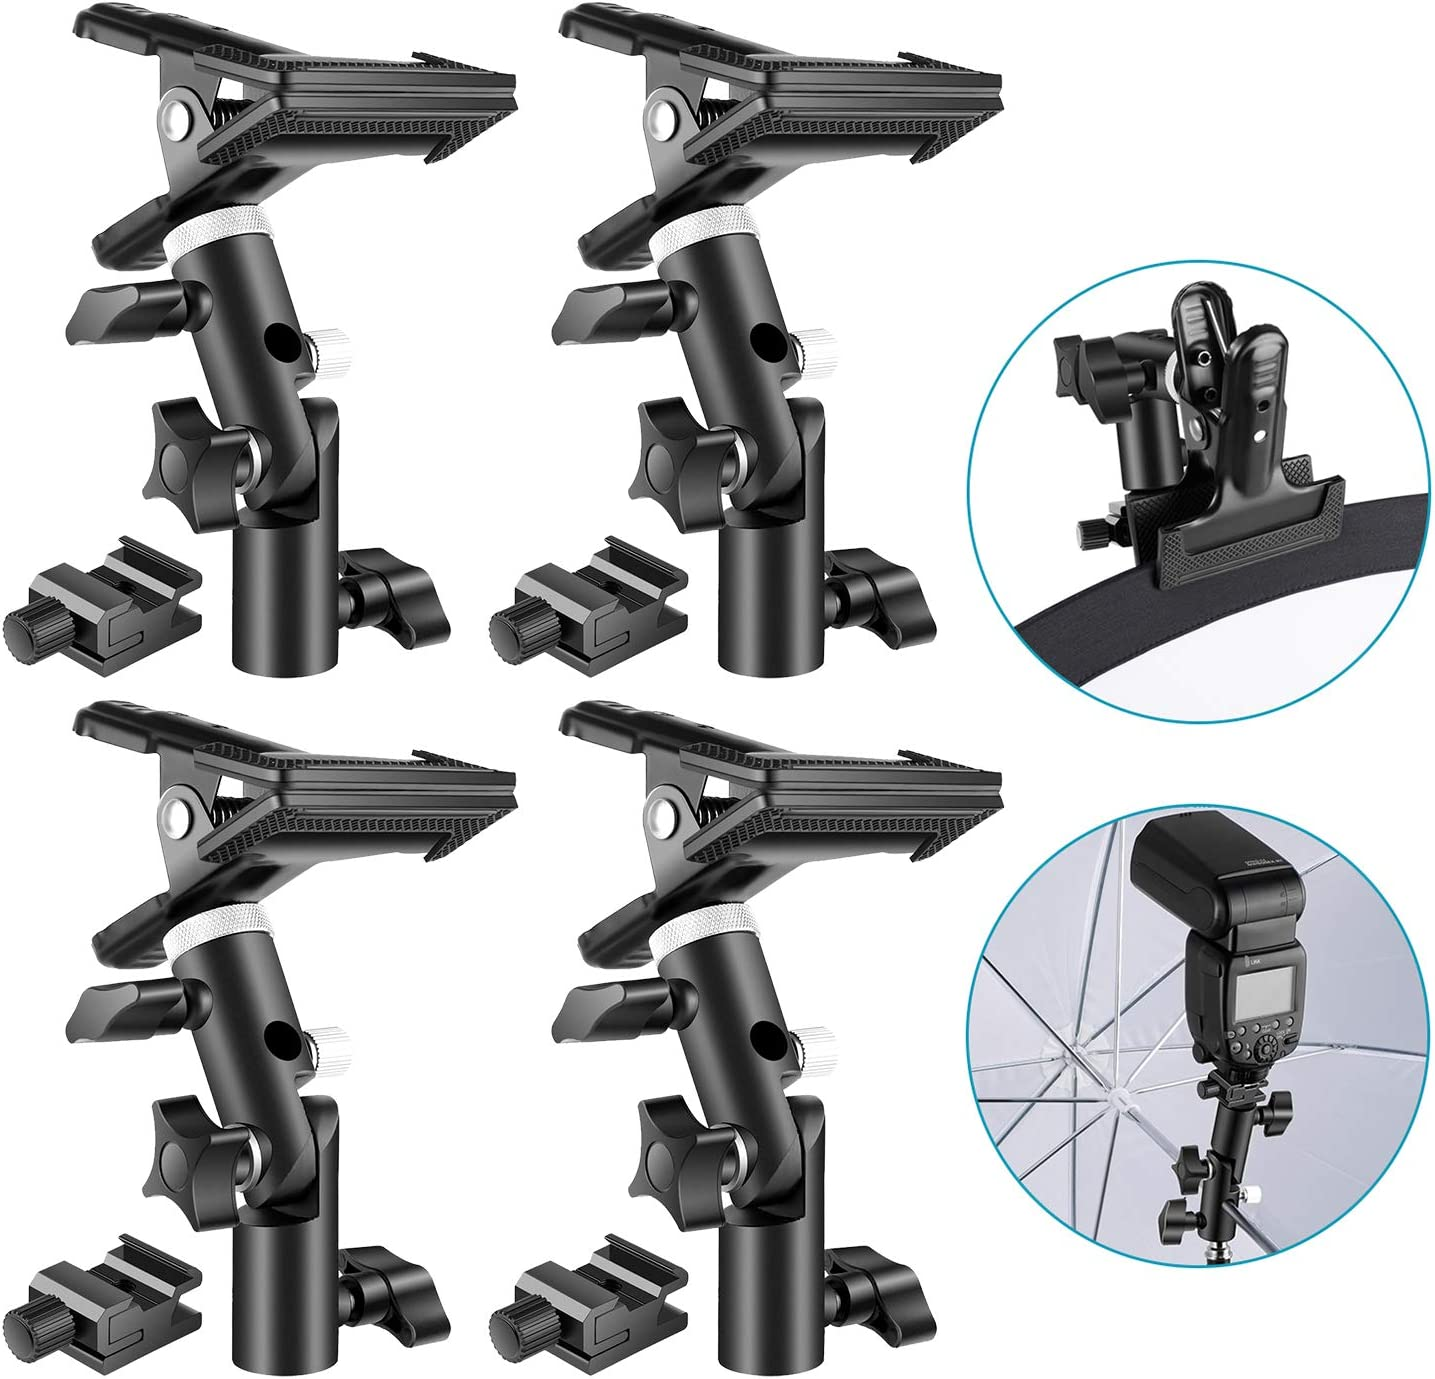 Neewer 4 Packs Photo Studio Heavy Duty Metal Clamp Holder and Cold Shoe Adapter for Clamping Reflector or Mounting Speedlite Flash and Umbrella on Light Stand